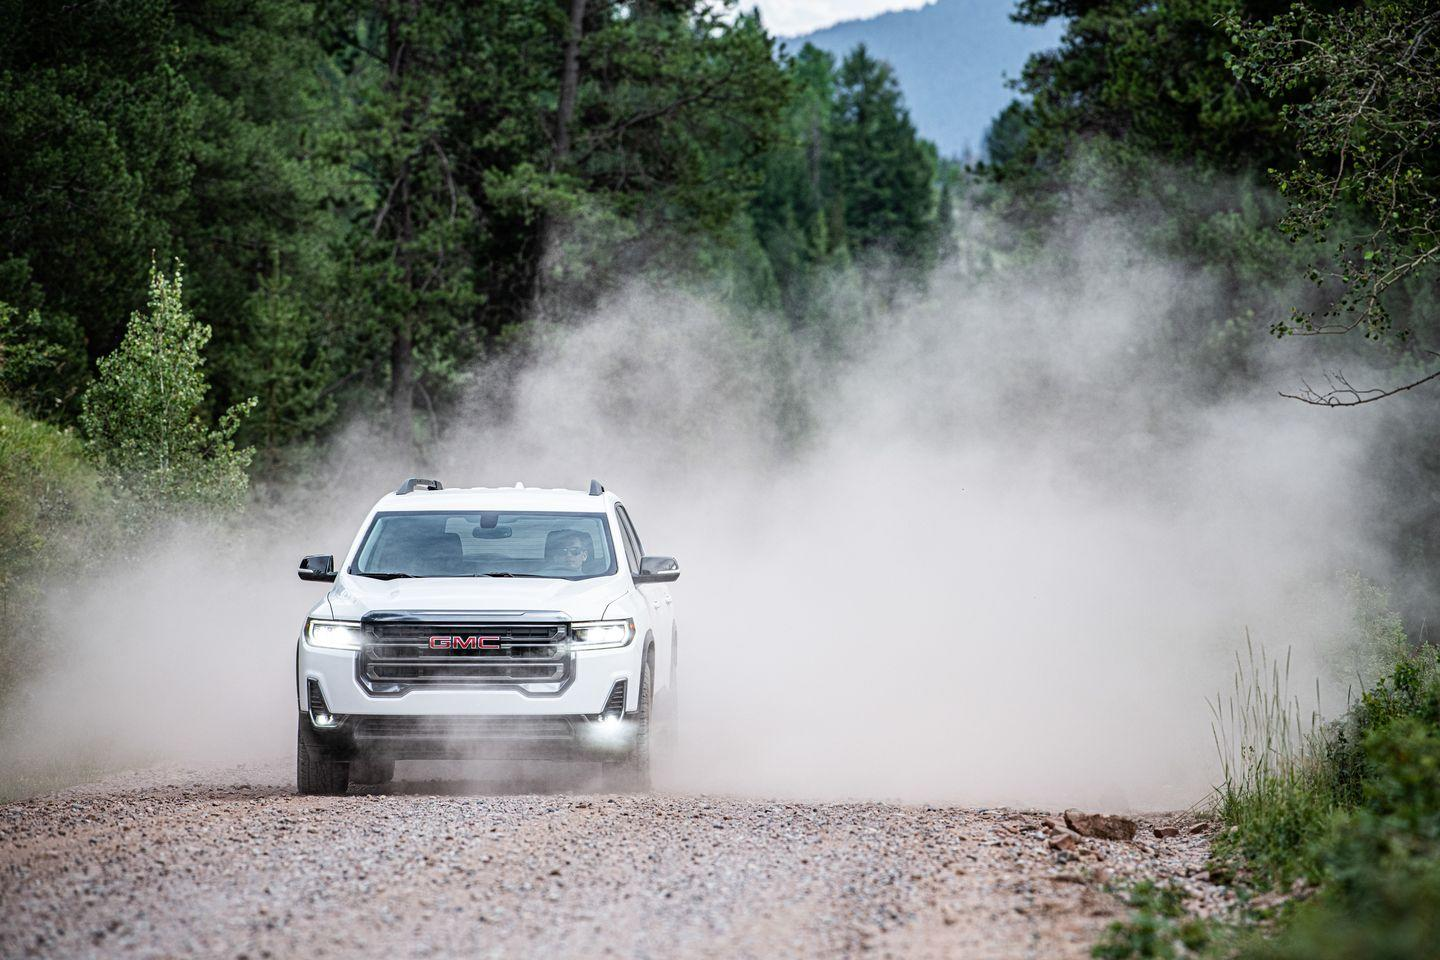 <p>The 2020 Acadia's updated front end sports a larger, more butch grille along with standard LED headlights.</p>